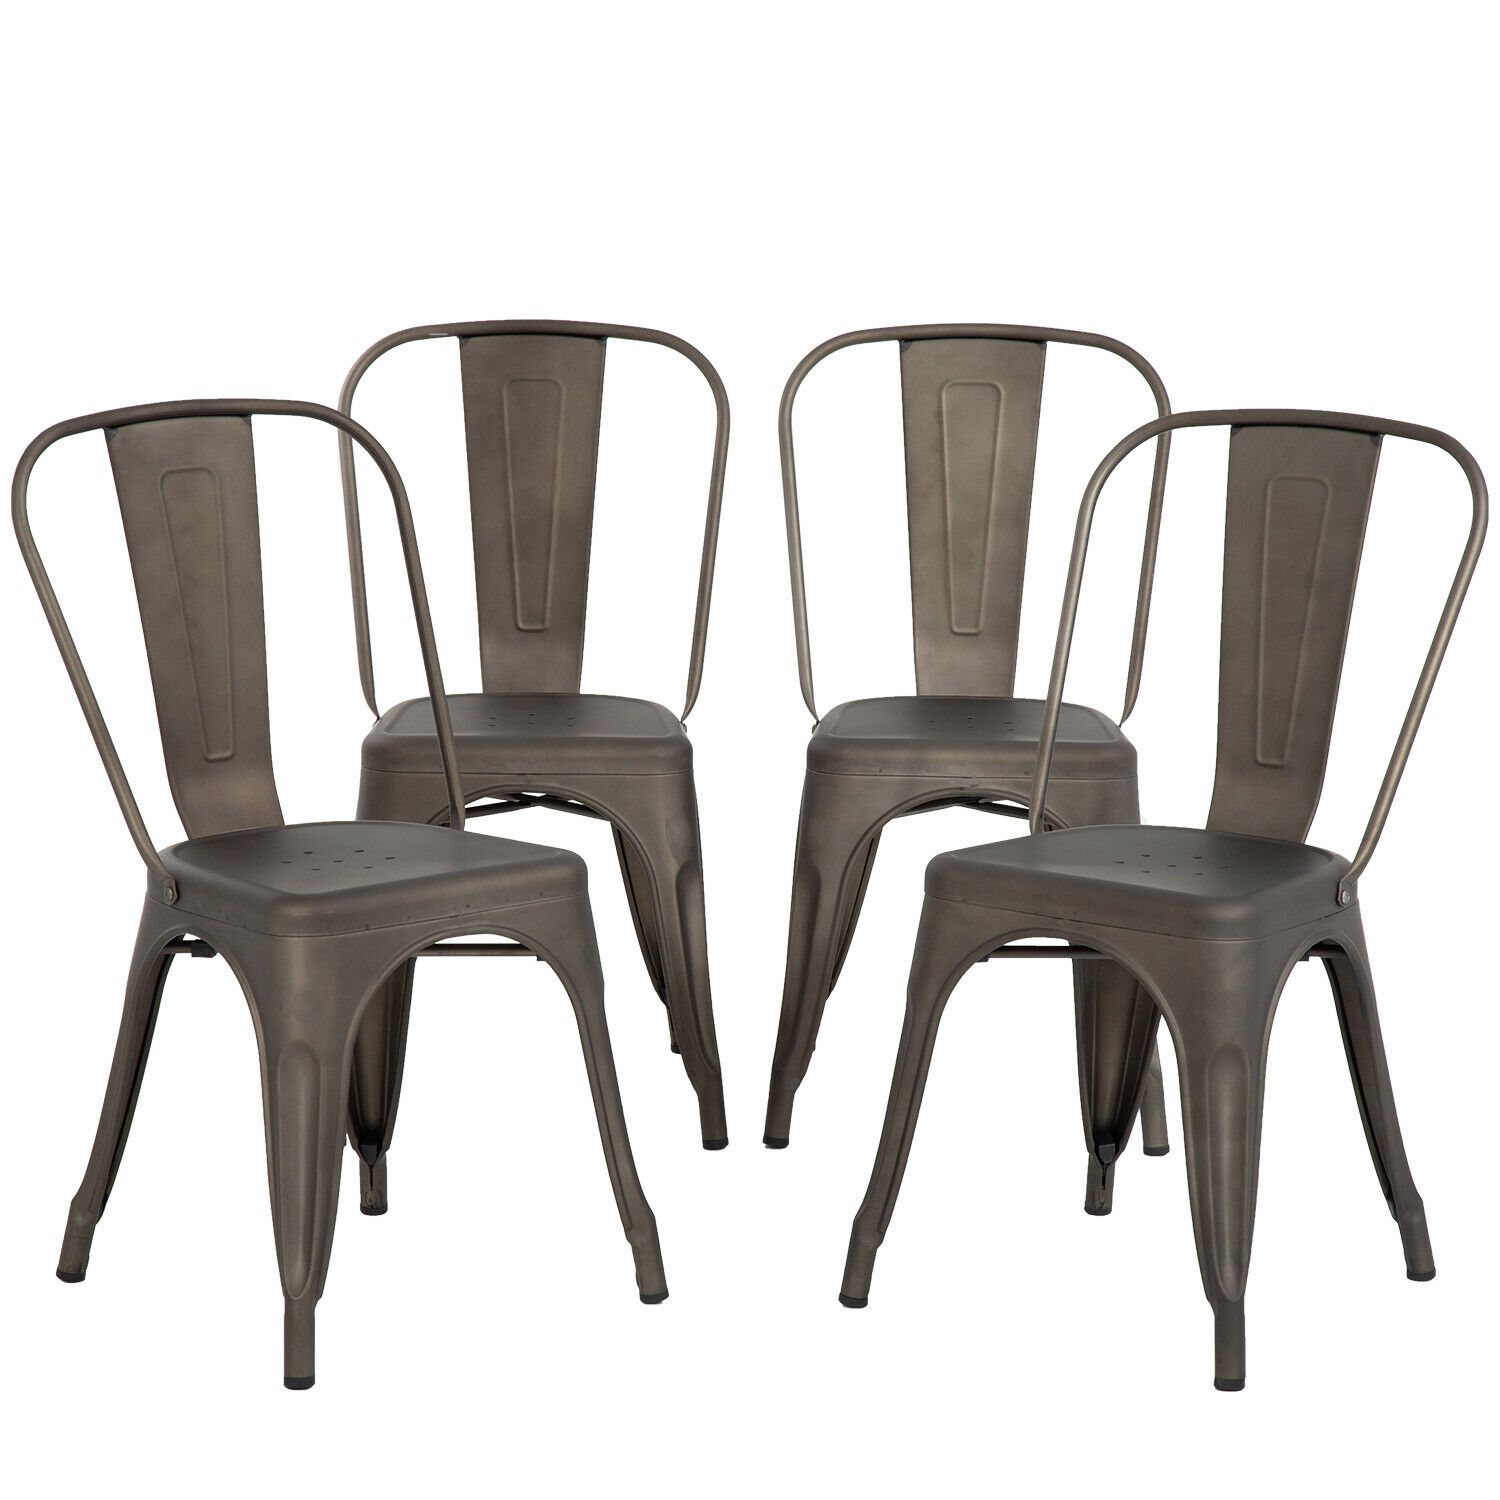 FDW Chair Metal Chairs Dining Chairs Tolix Restaurant Chair Set of 4  Kitchen Chair 18inch Seat Height Chic Trattoria Metal Indoor/Outdoor Side  Bar ...